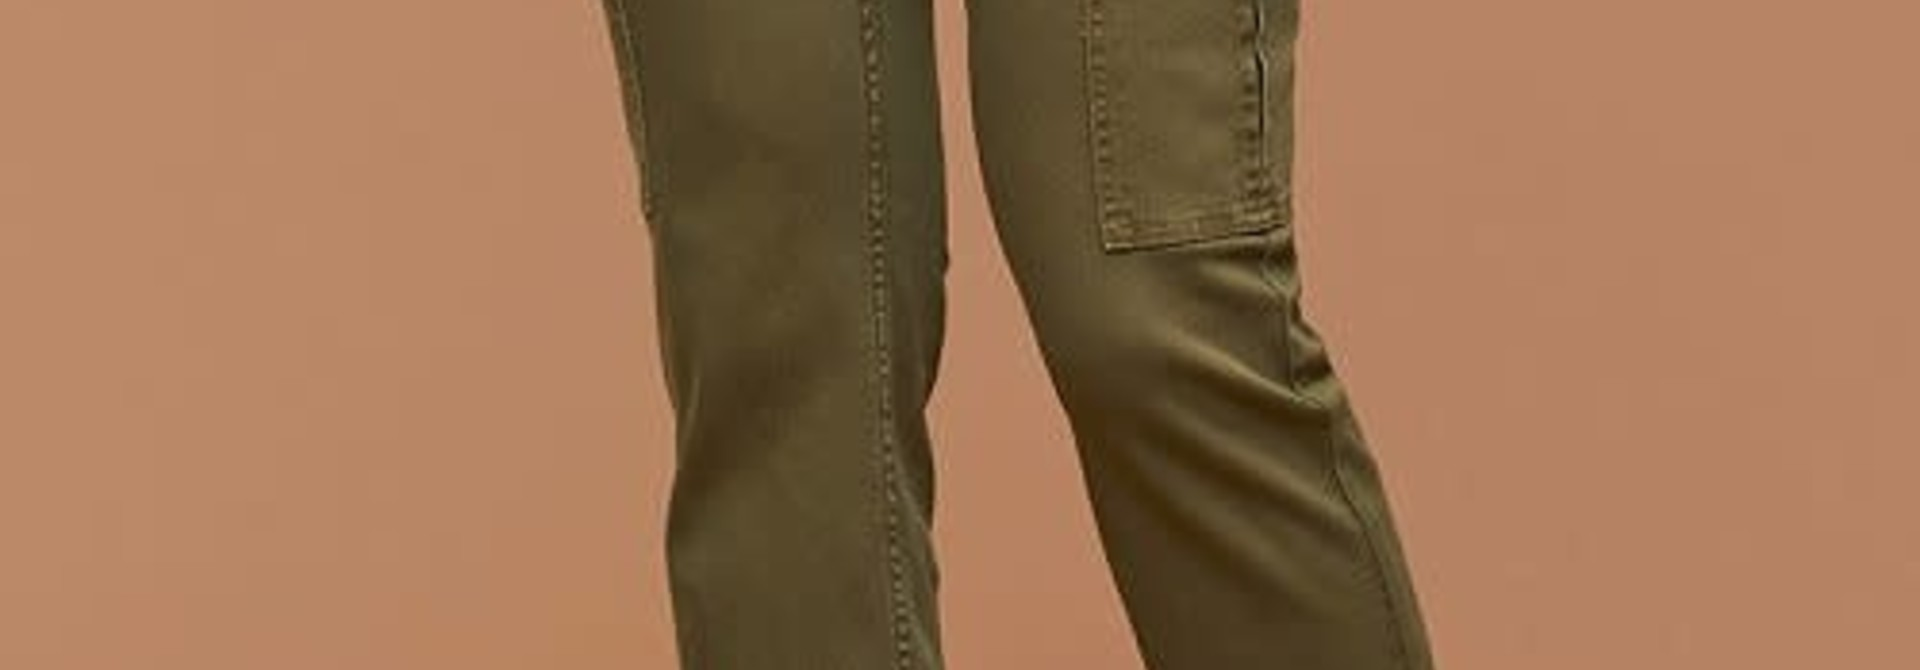 Outbound pants 2110